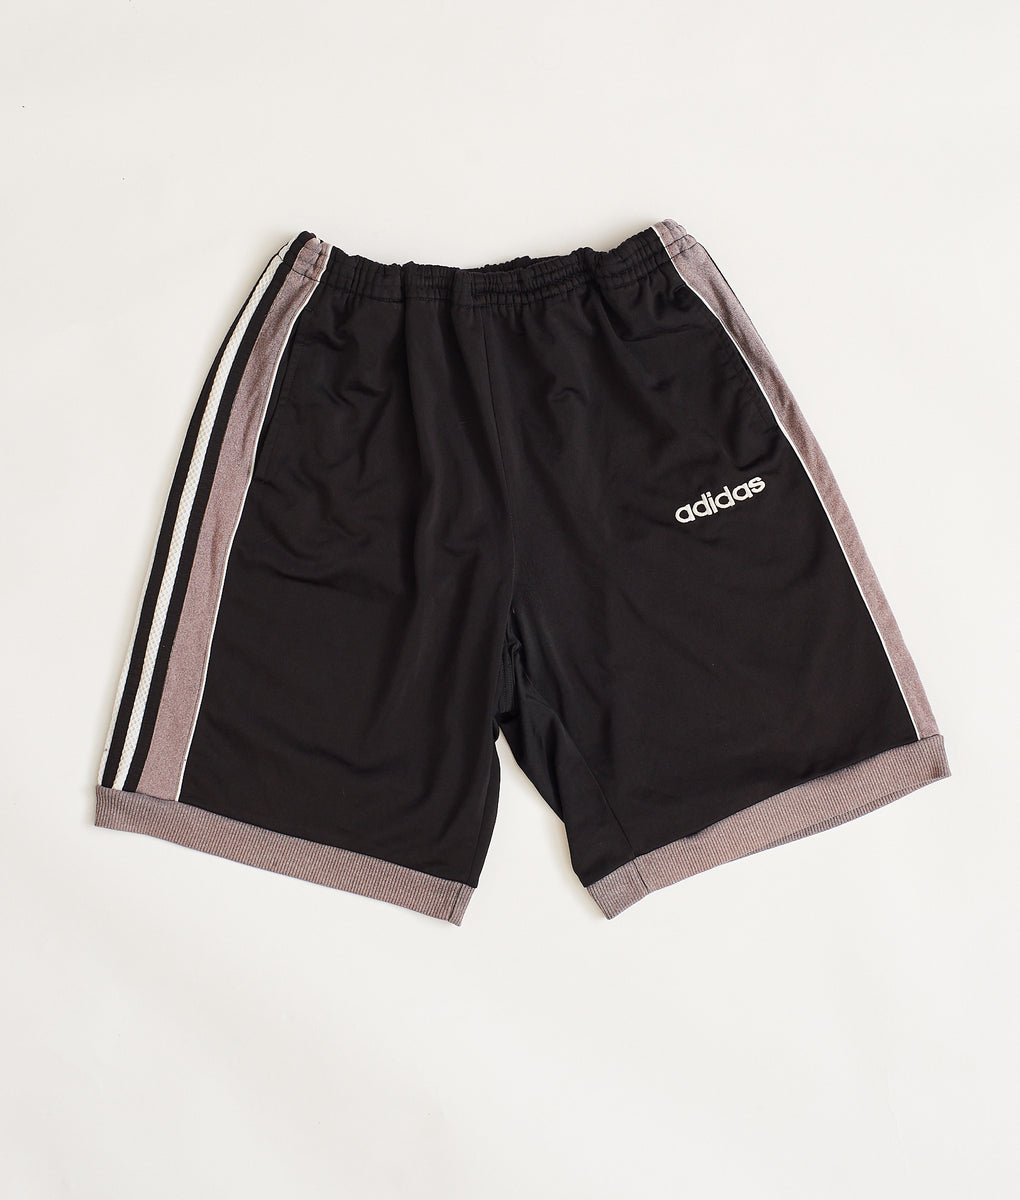 Adidas Sports Shorts (L) - FROTHLYF